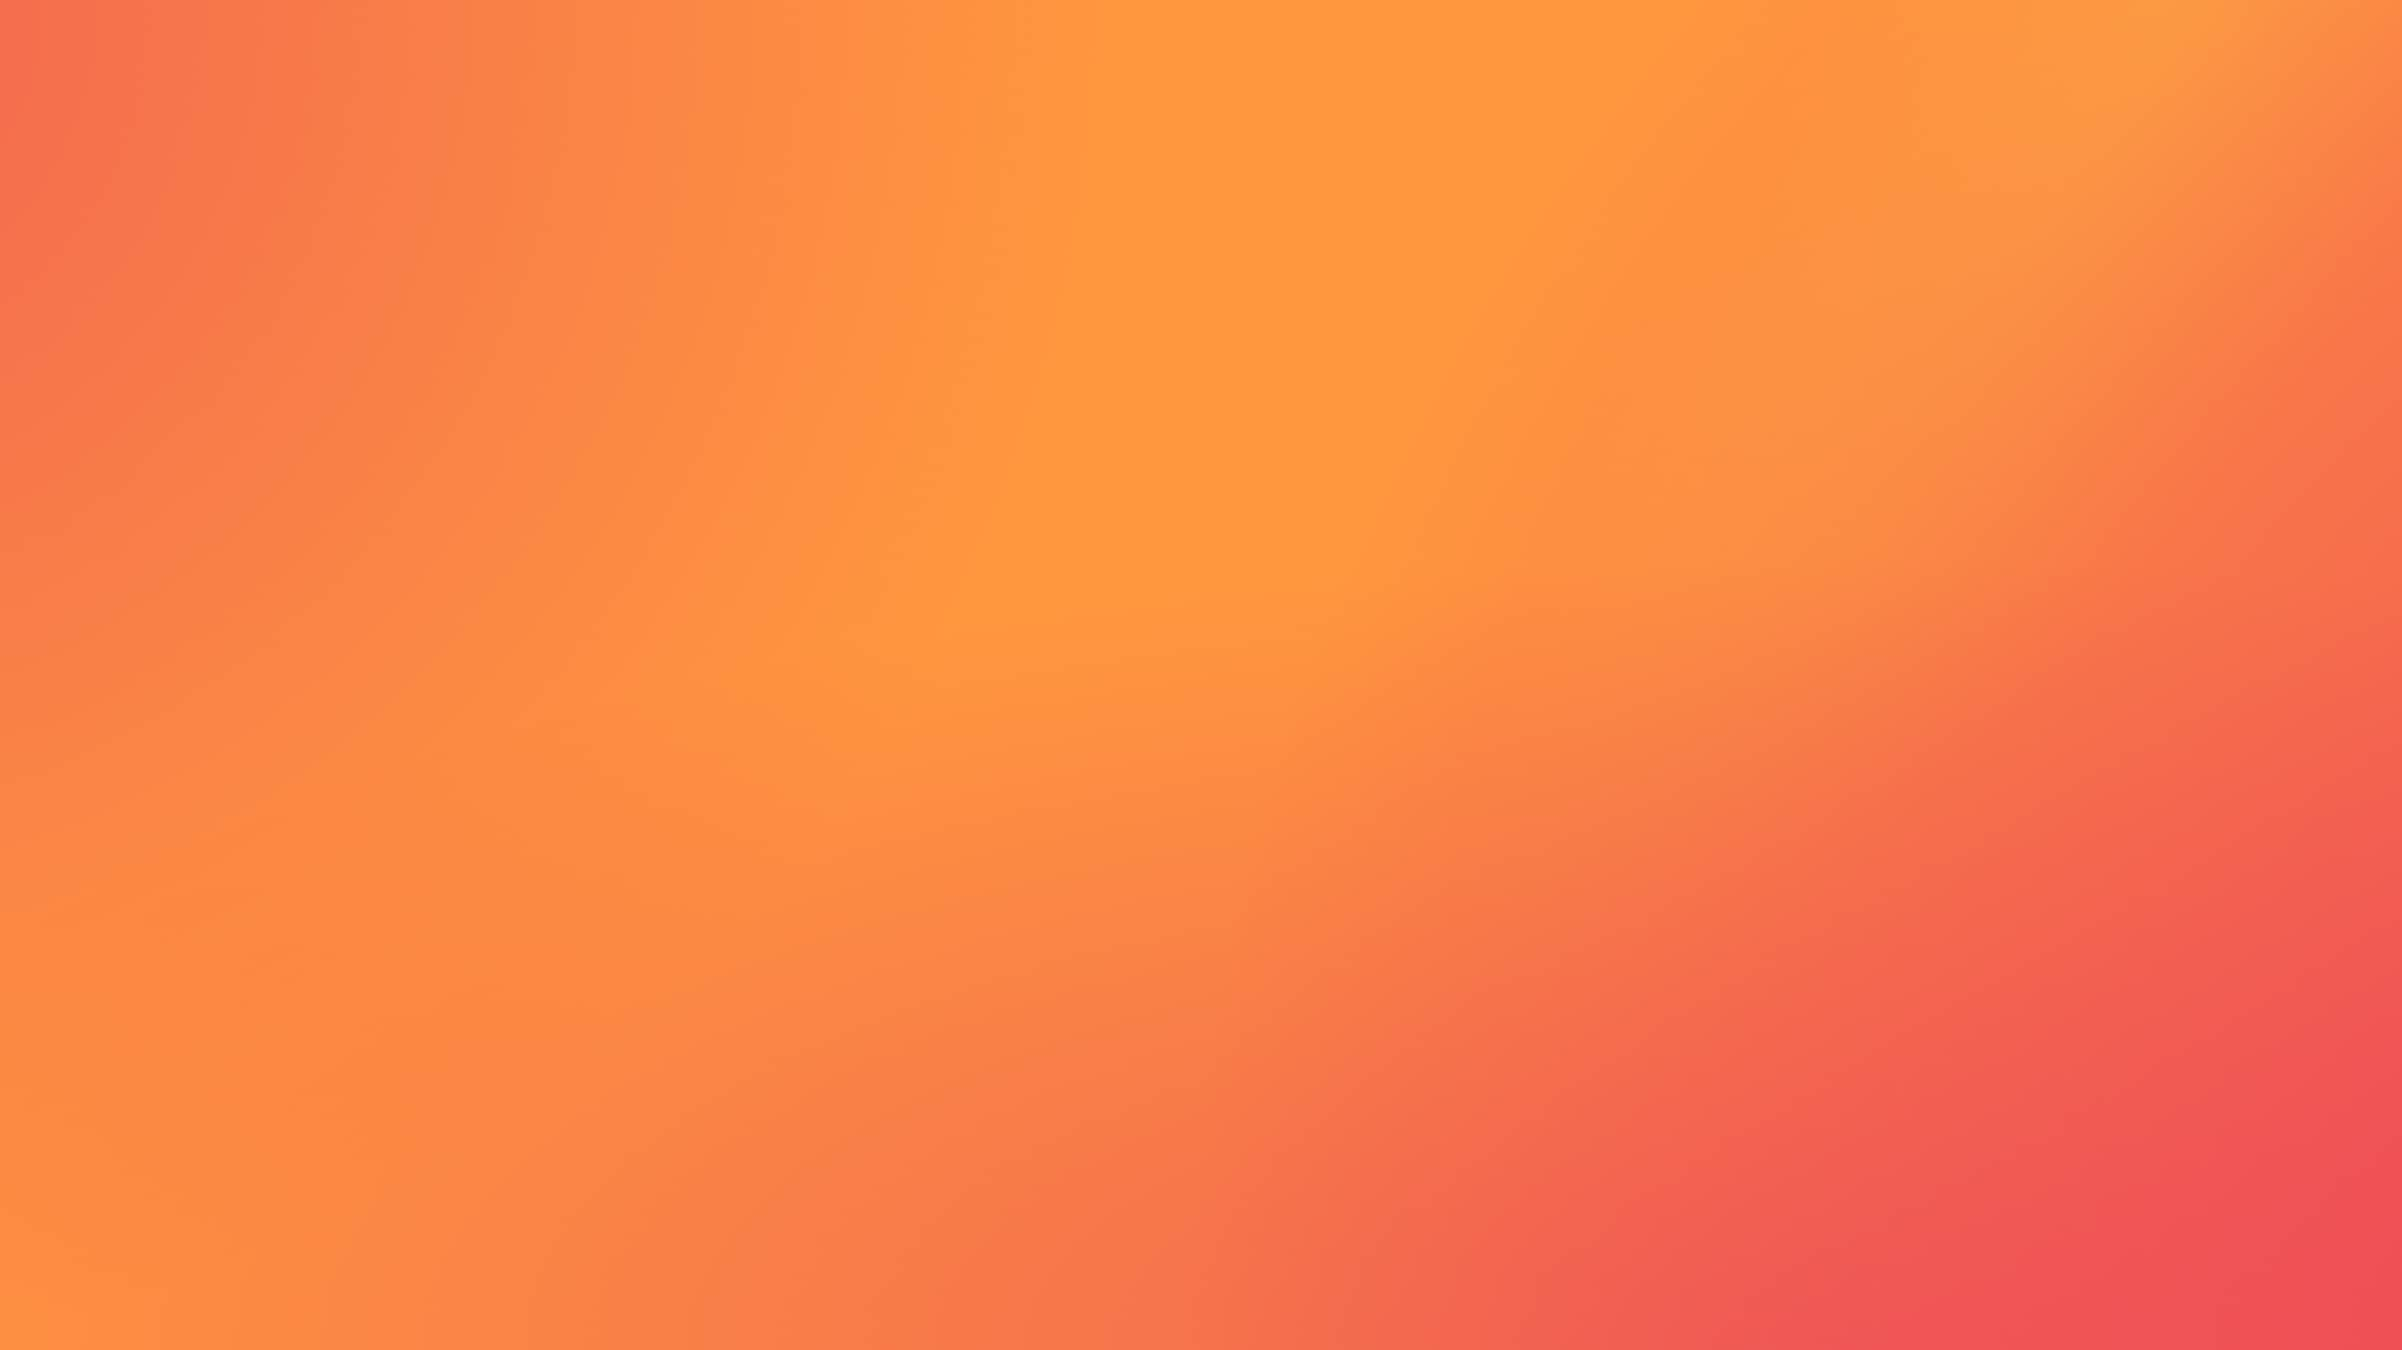 bg-gradient-orange